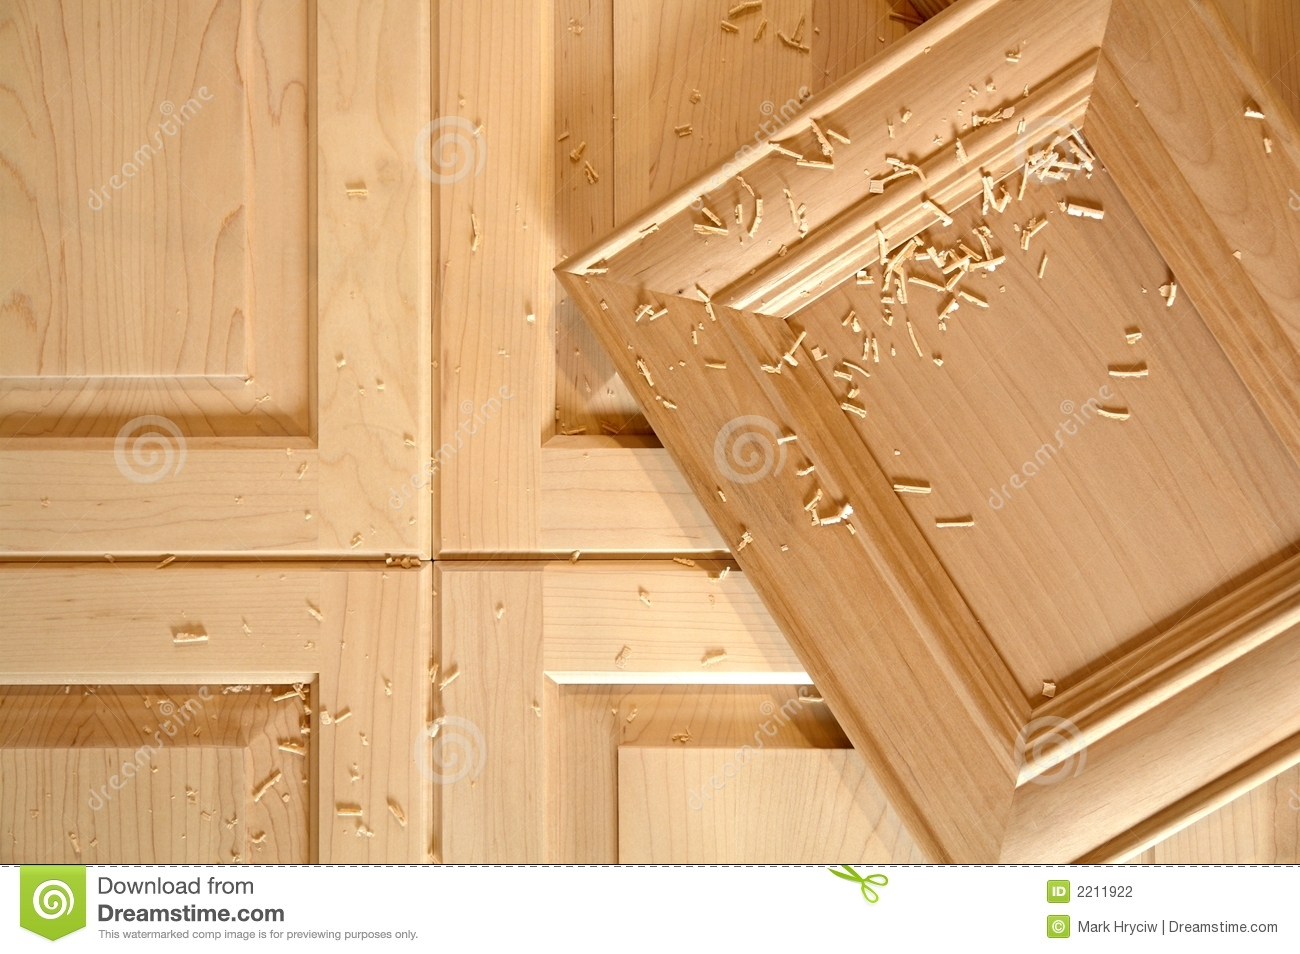 Furniture For Less Custom Cabinet Doors Stock Photo. Image Of Furniture